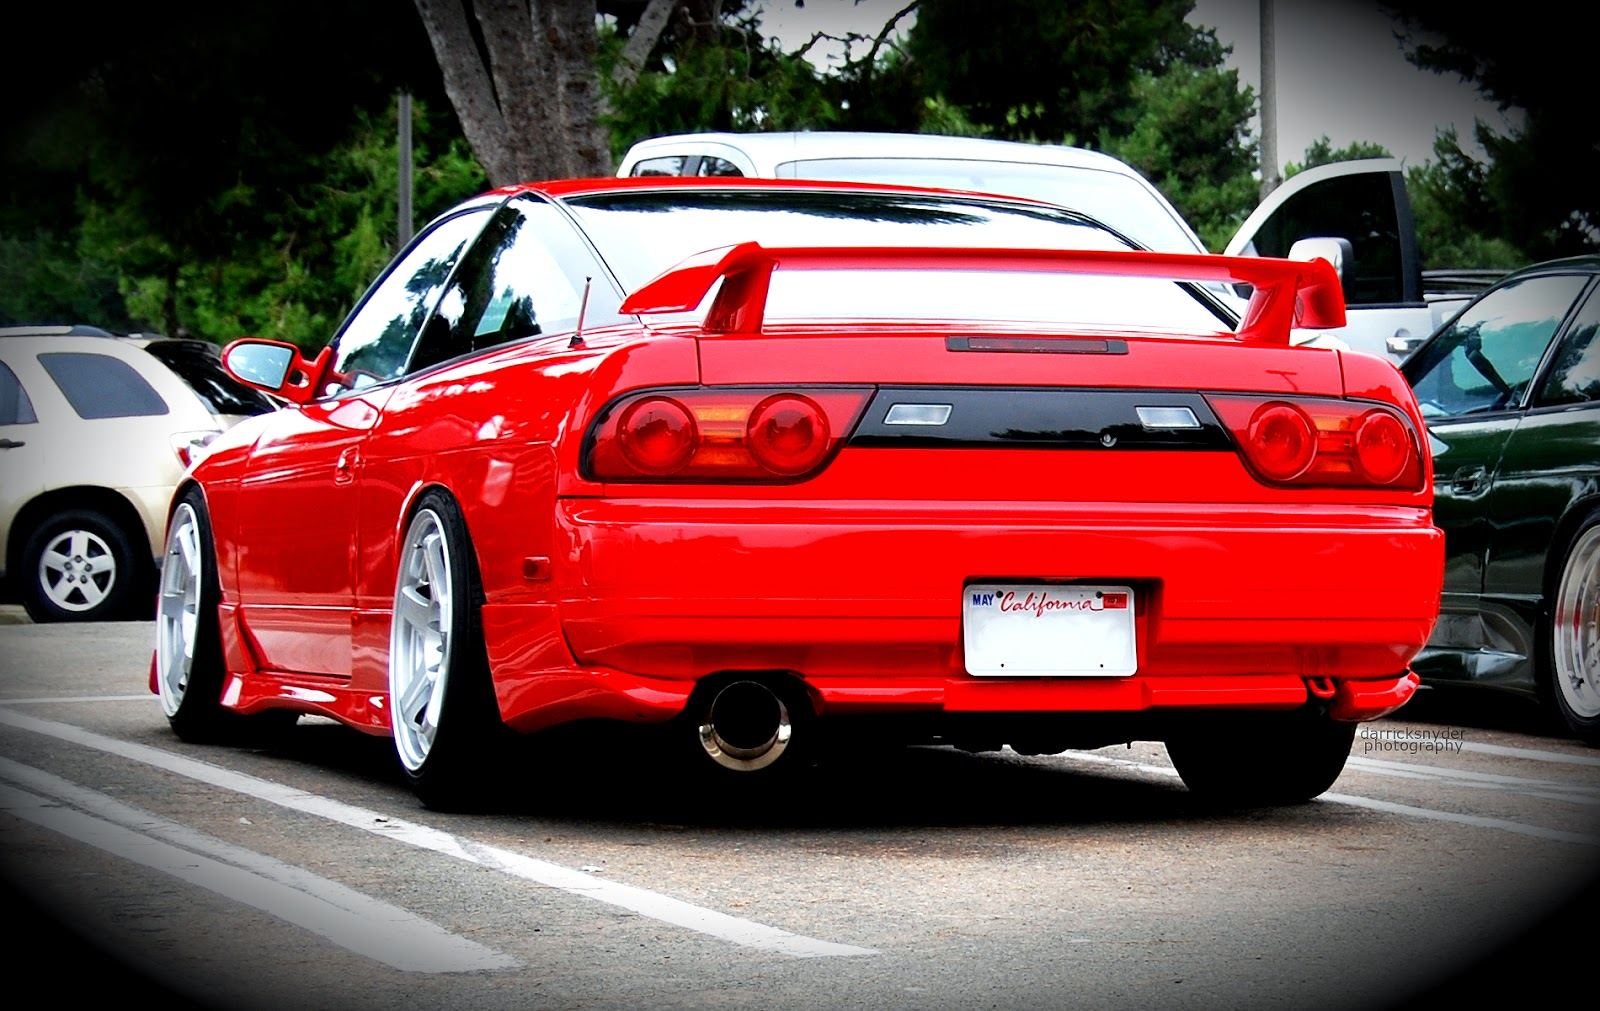 Nissan Silvia S14 For Sale In Usa nissan 240sx s13 body kits